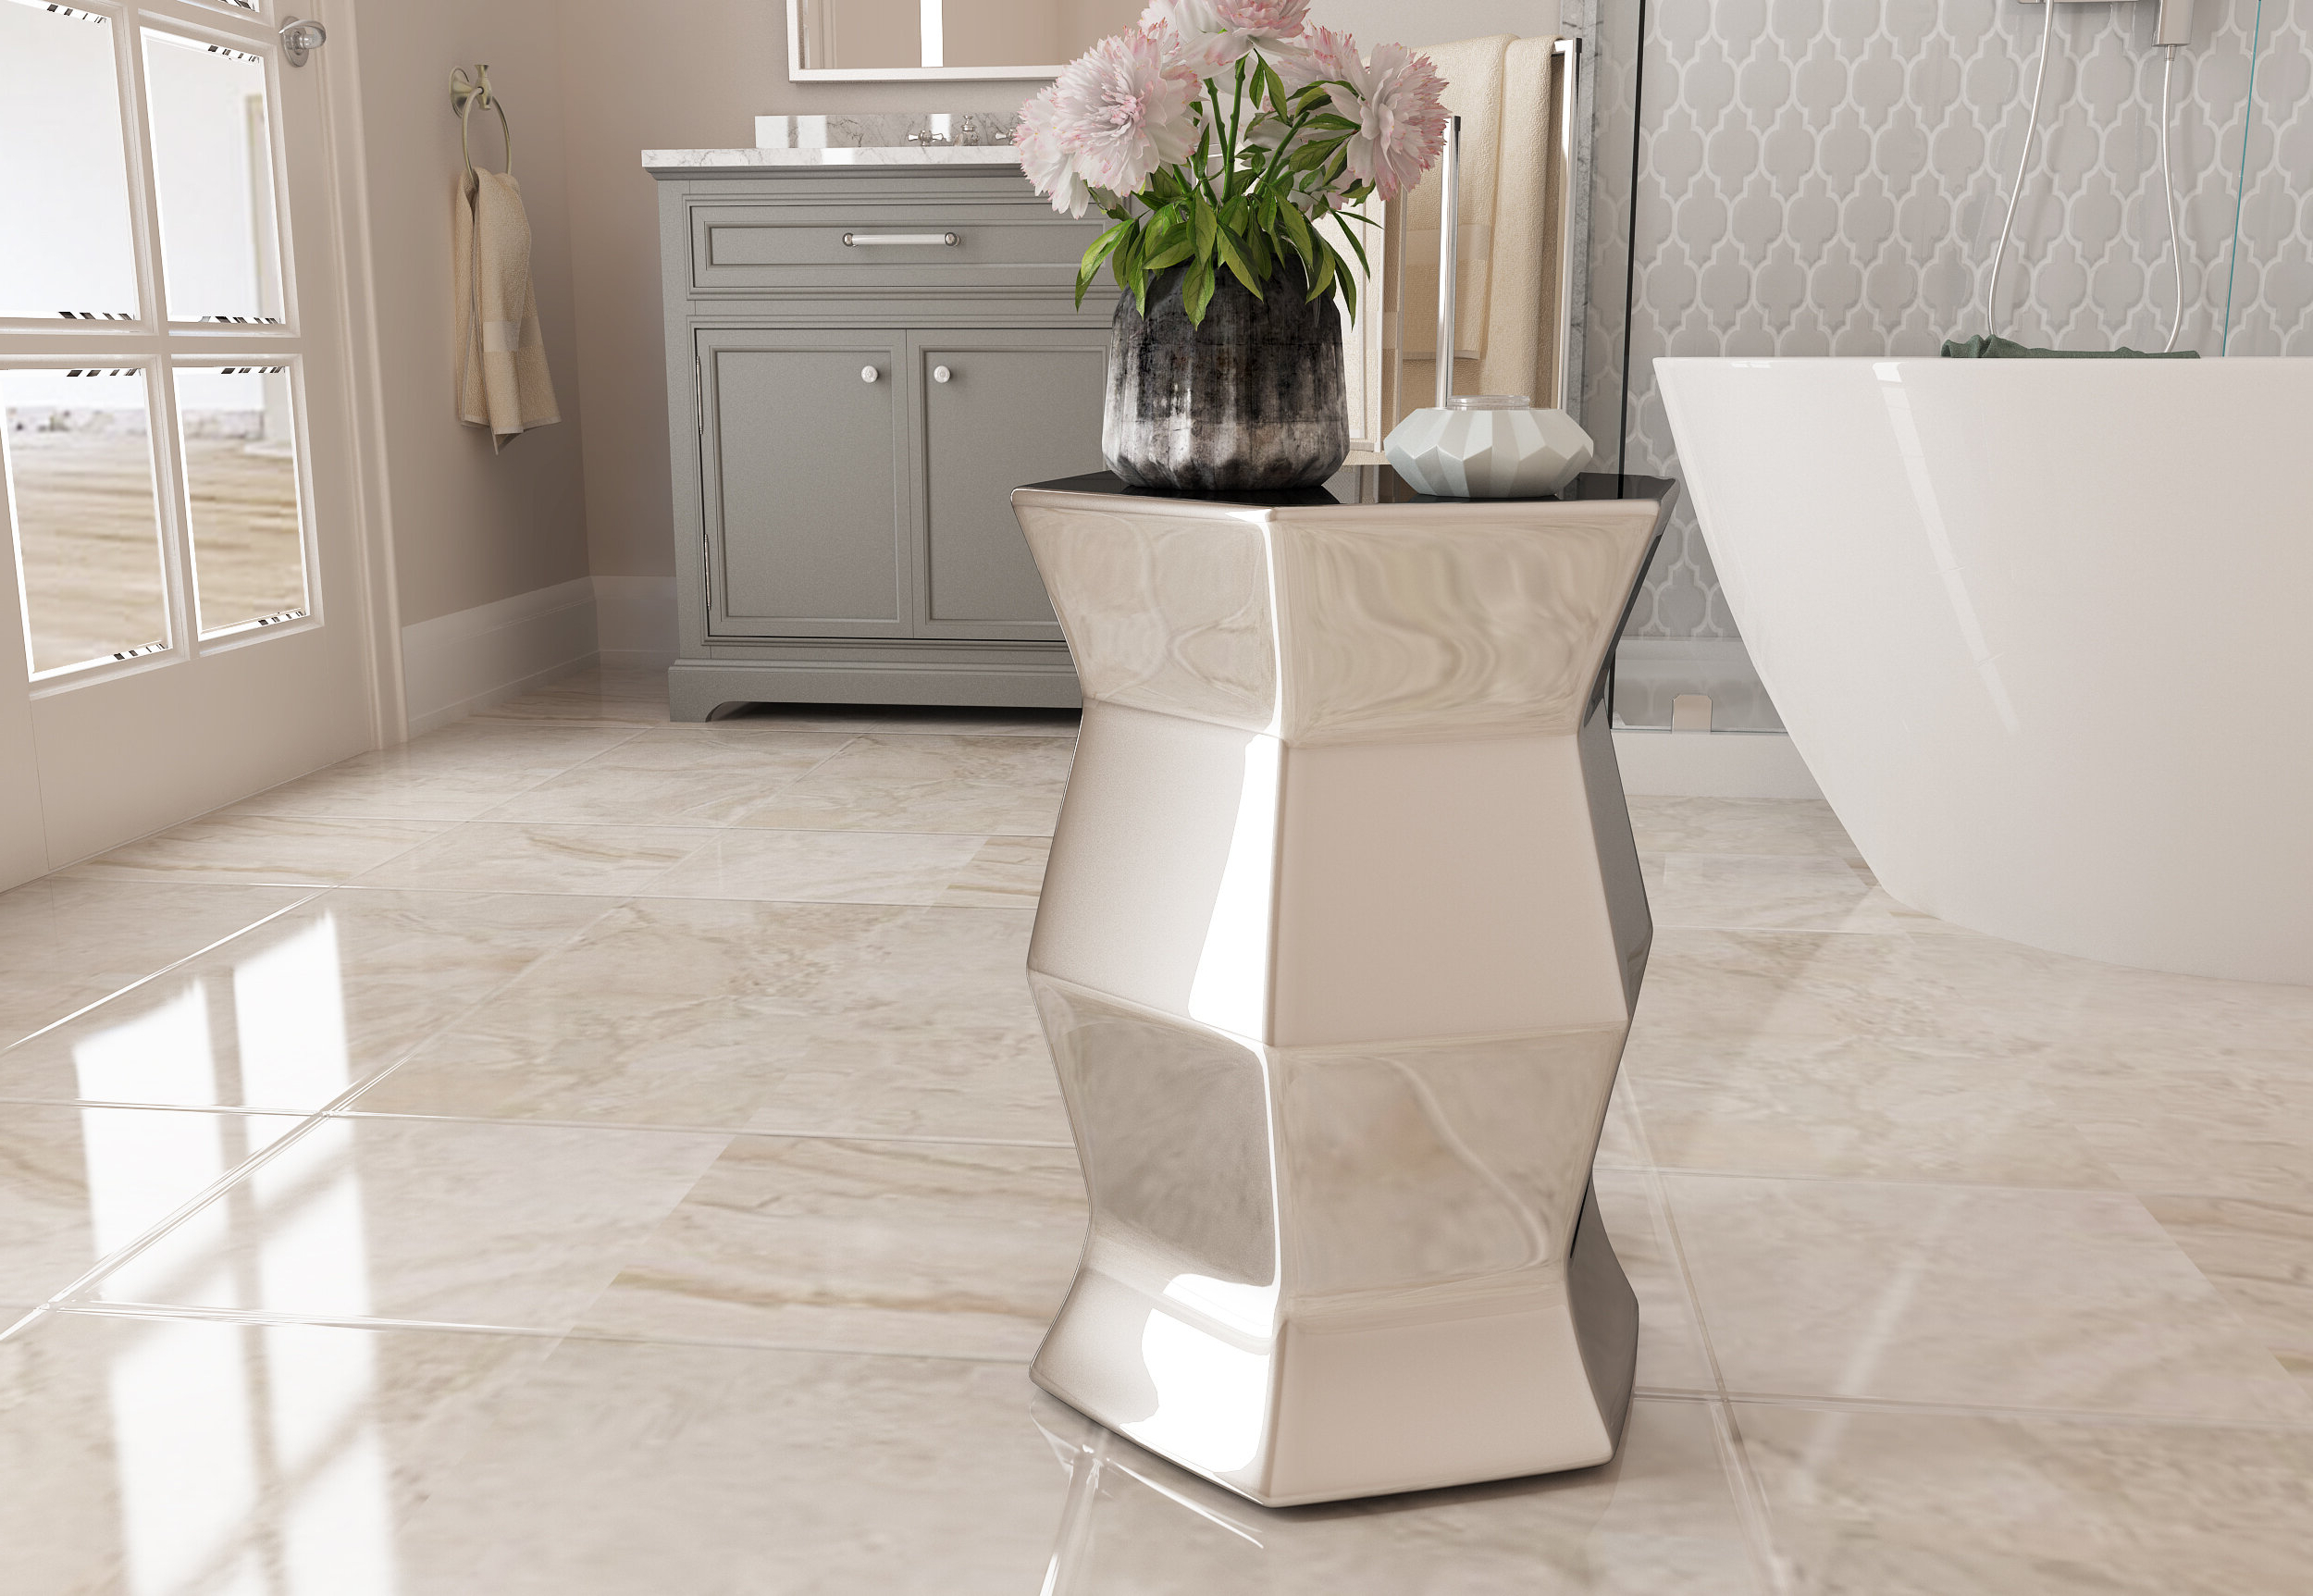 Trendy Cyra Hexagon Ceramic Garden Stool Intended For Karlov Ceramic Garden Stools (View 17 of 30)